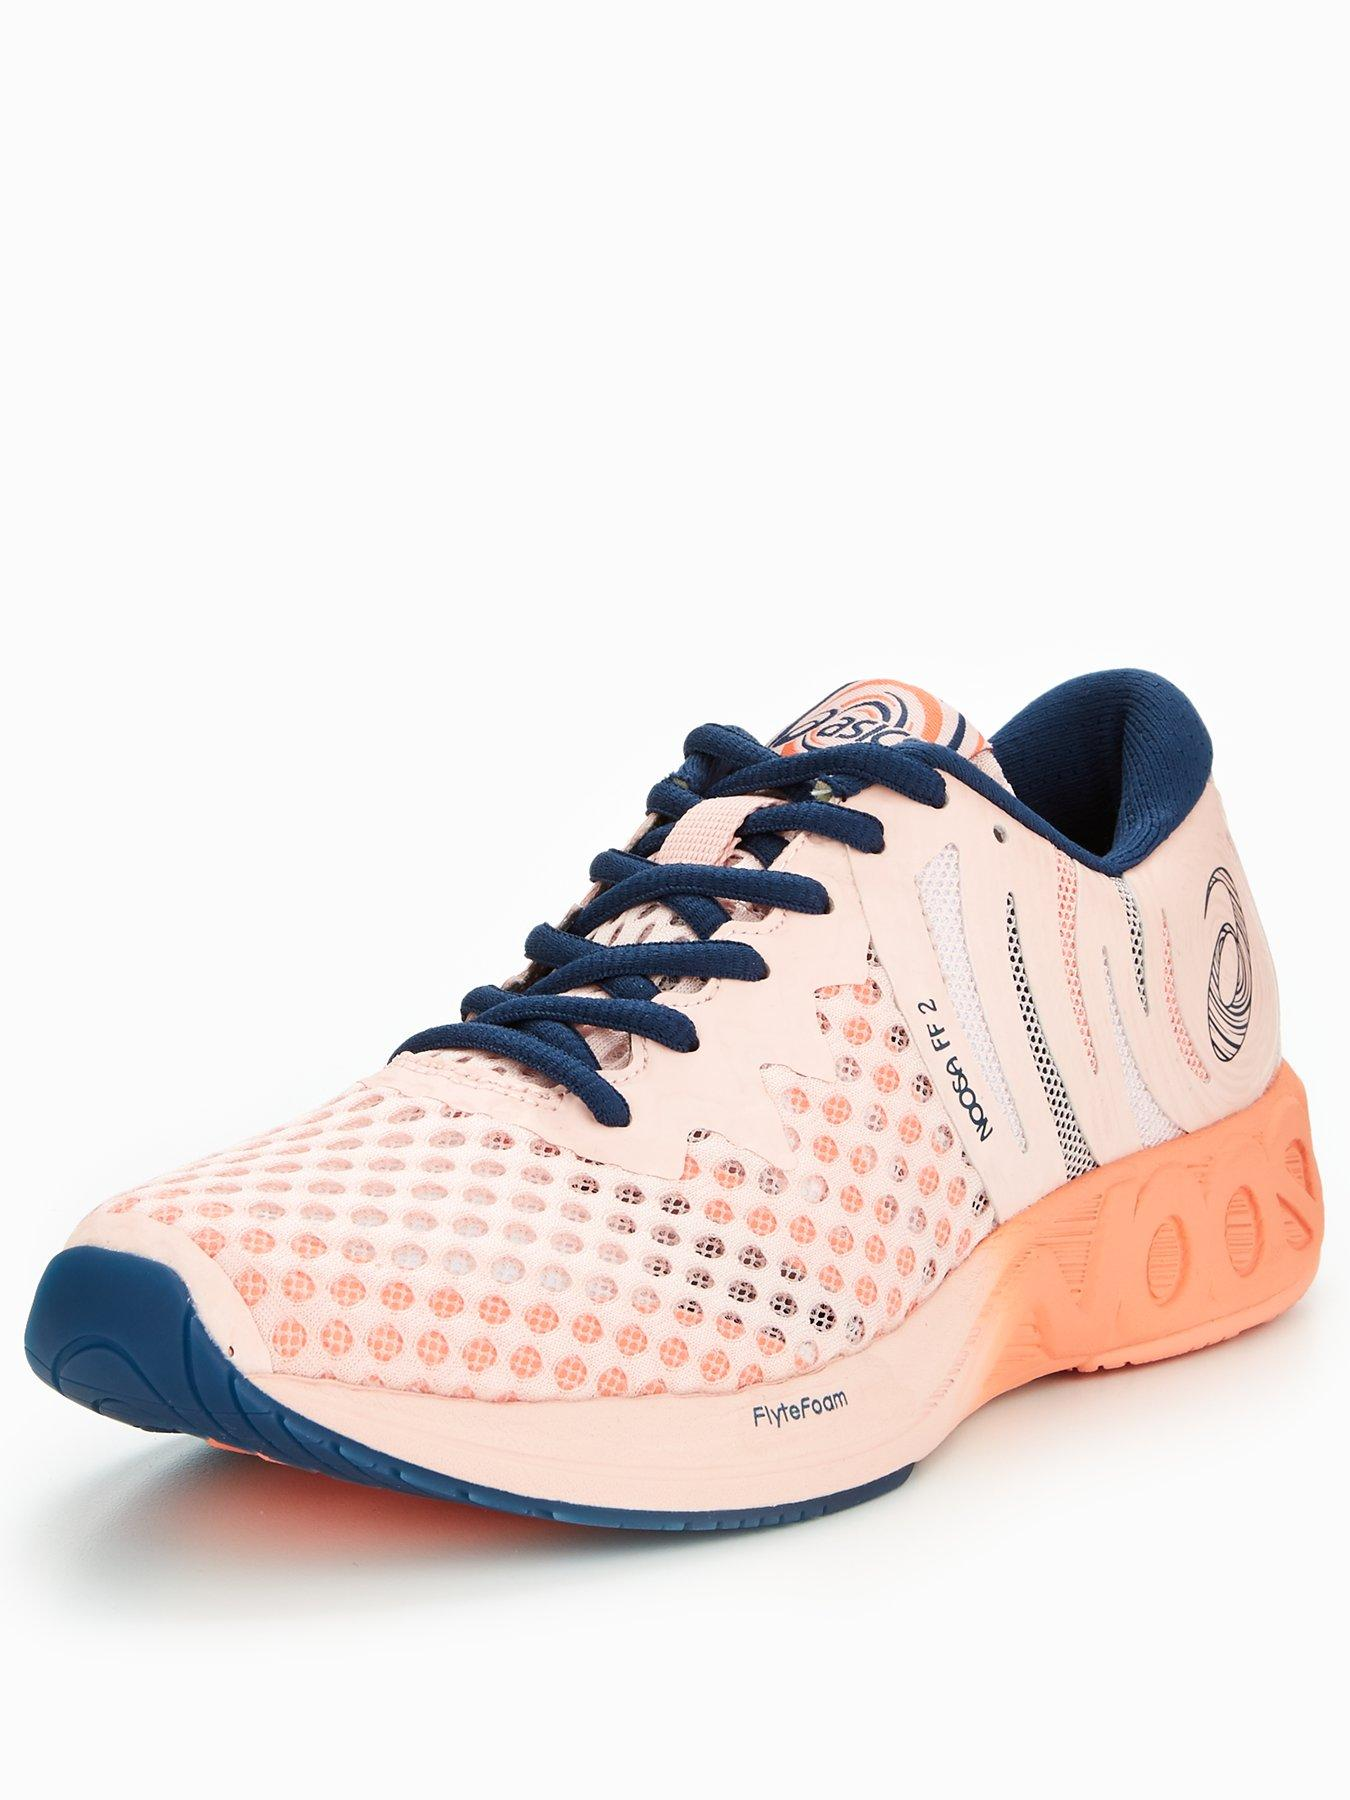 ASICS Running Gel Kayano TRAINER Knit Birch Birch MIS. 435